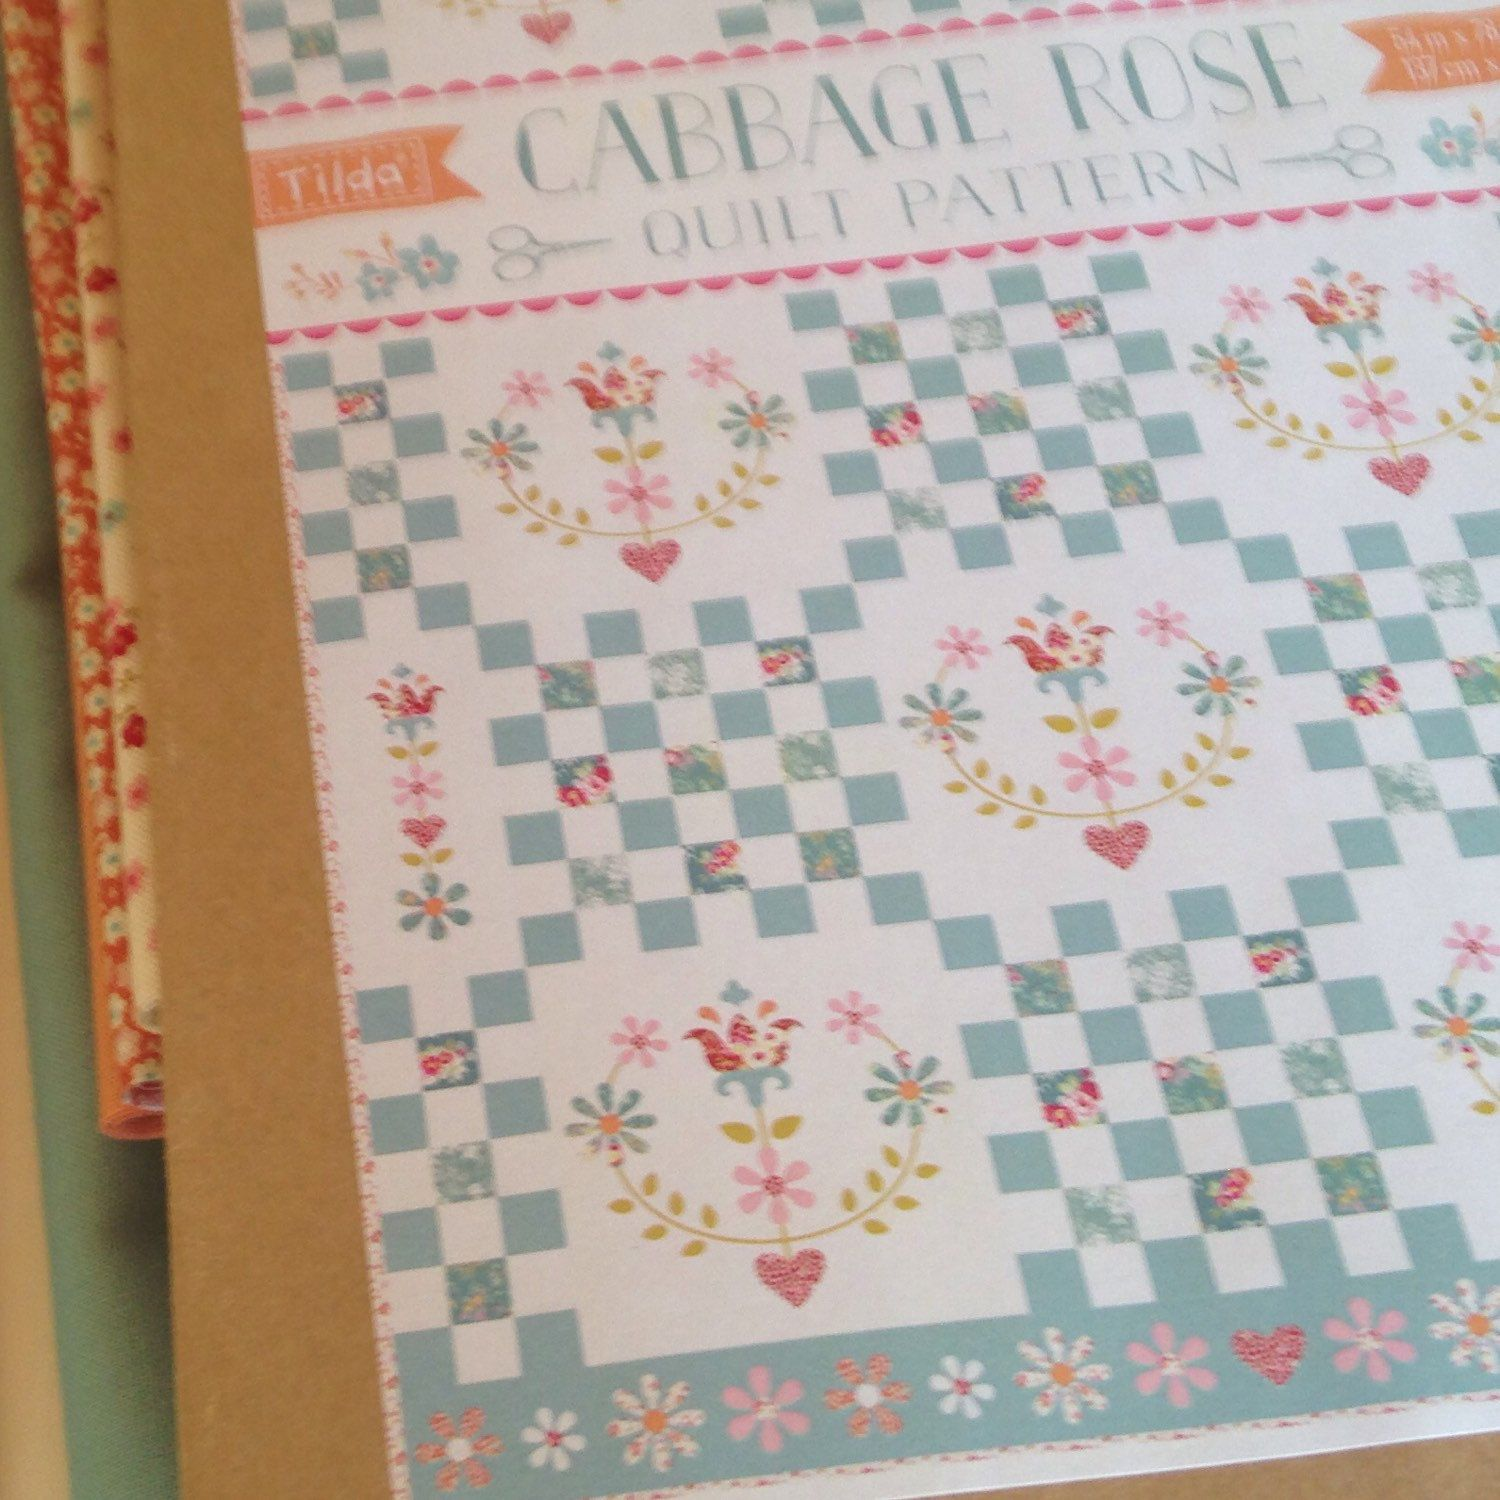 Tilda Cabbage Rose Quilt Kits Are Now Ready Quilt Kits